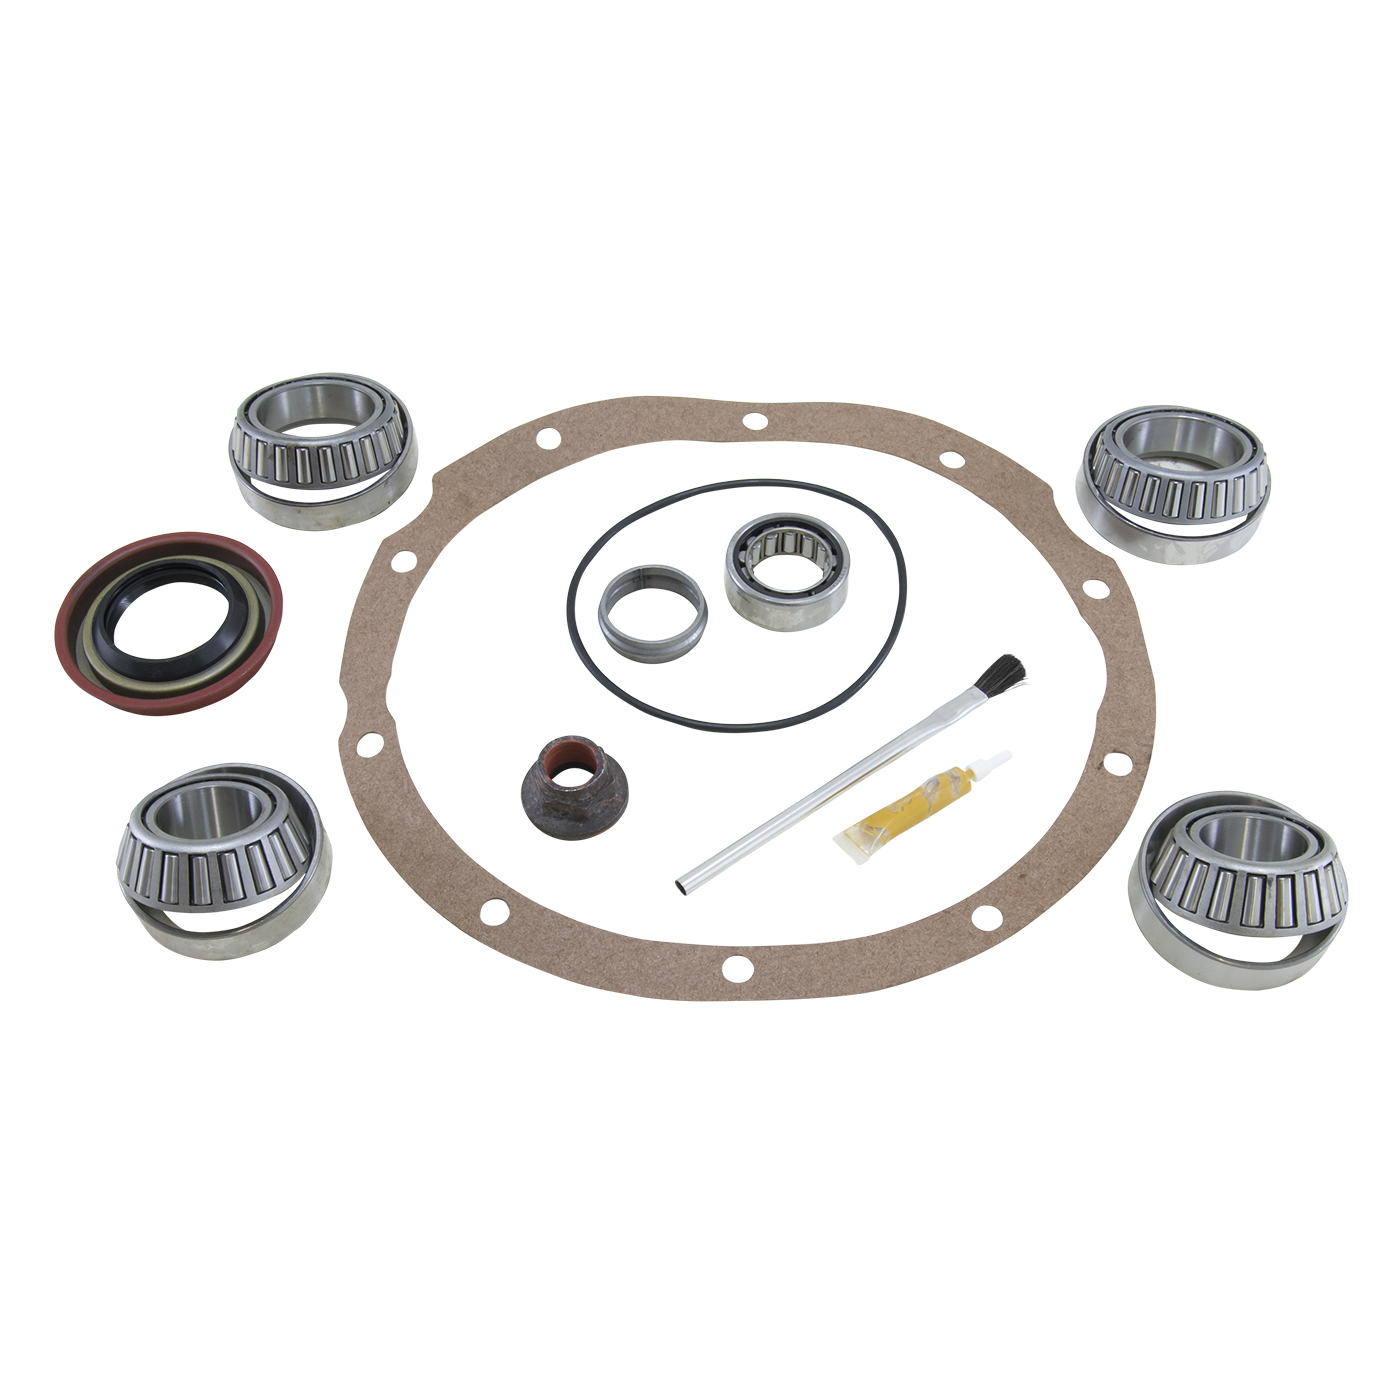 ZBKF9-A - USA Standard Bearing kit for Ford 9